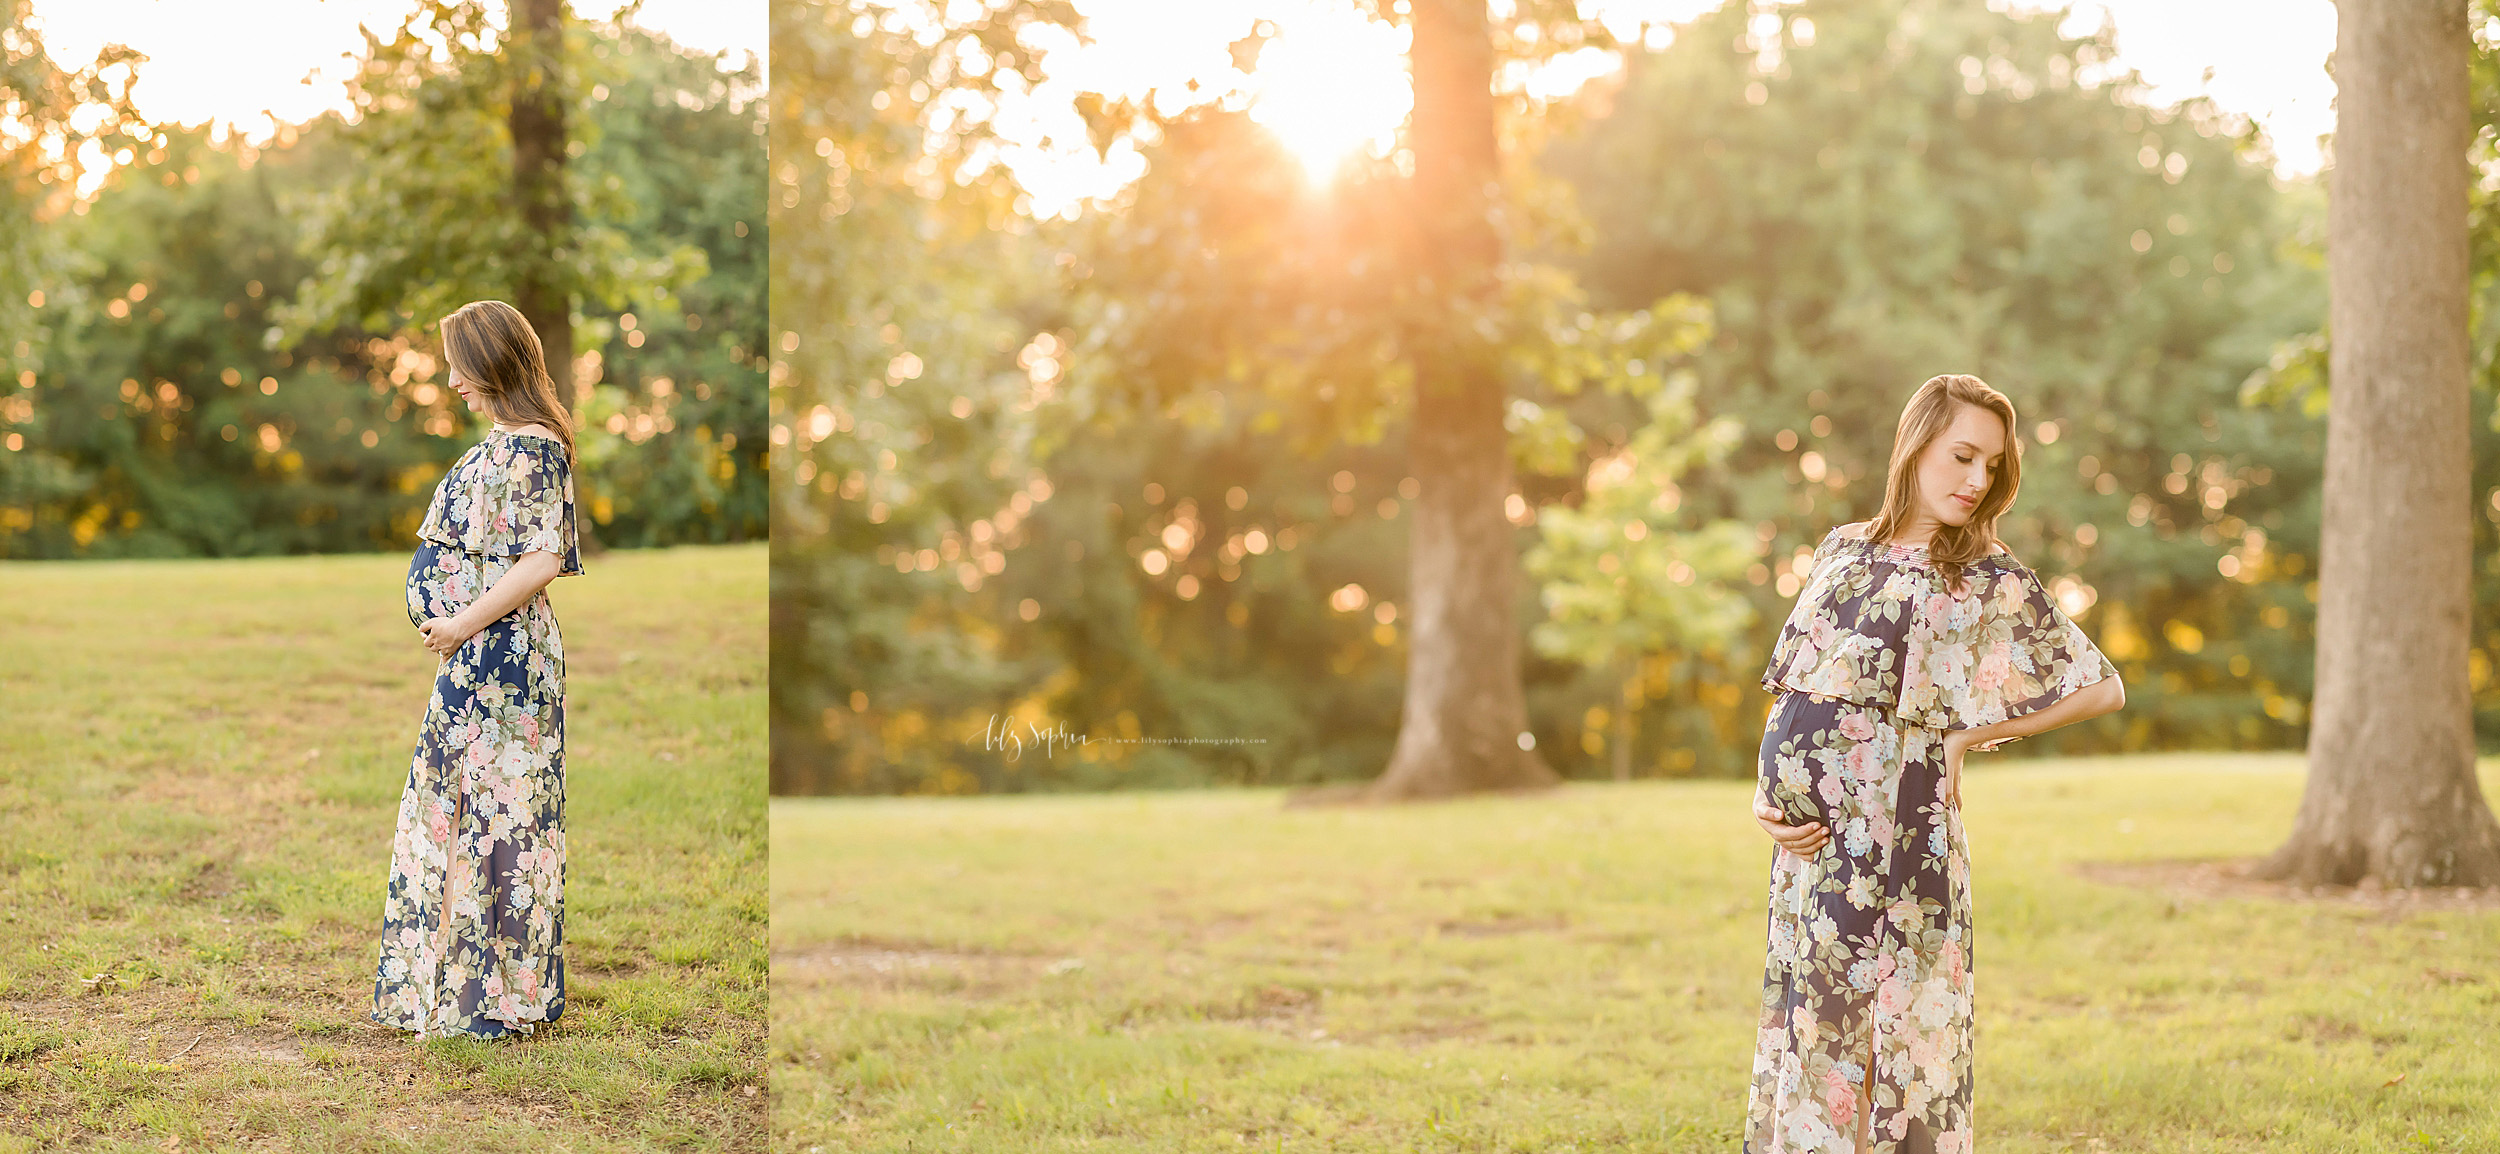 atlanta-smyrna-decatur-sandy-springs-buckhead-virginia-highlands-west-end-decatur-lily-sophia-photography-park-outside-sunset-dogs-couples-maternity-photo-session-expecting-baby-girl_1390.jpg